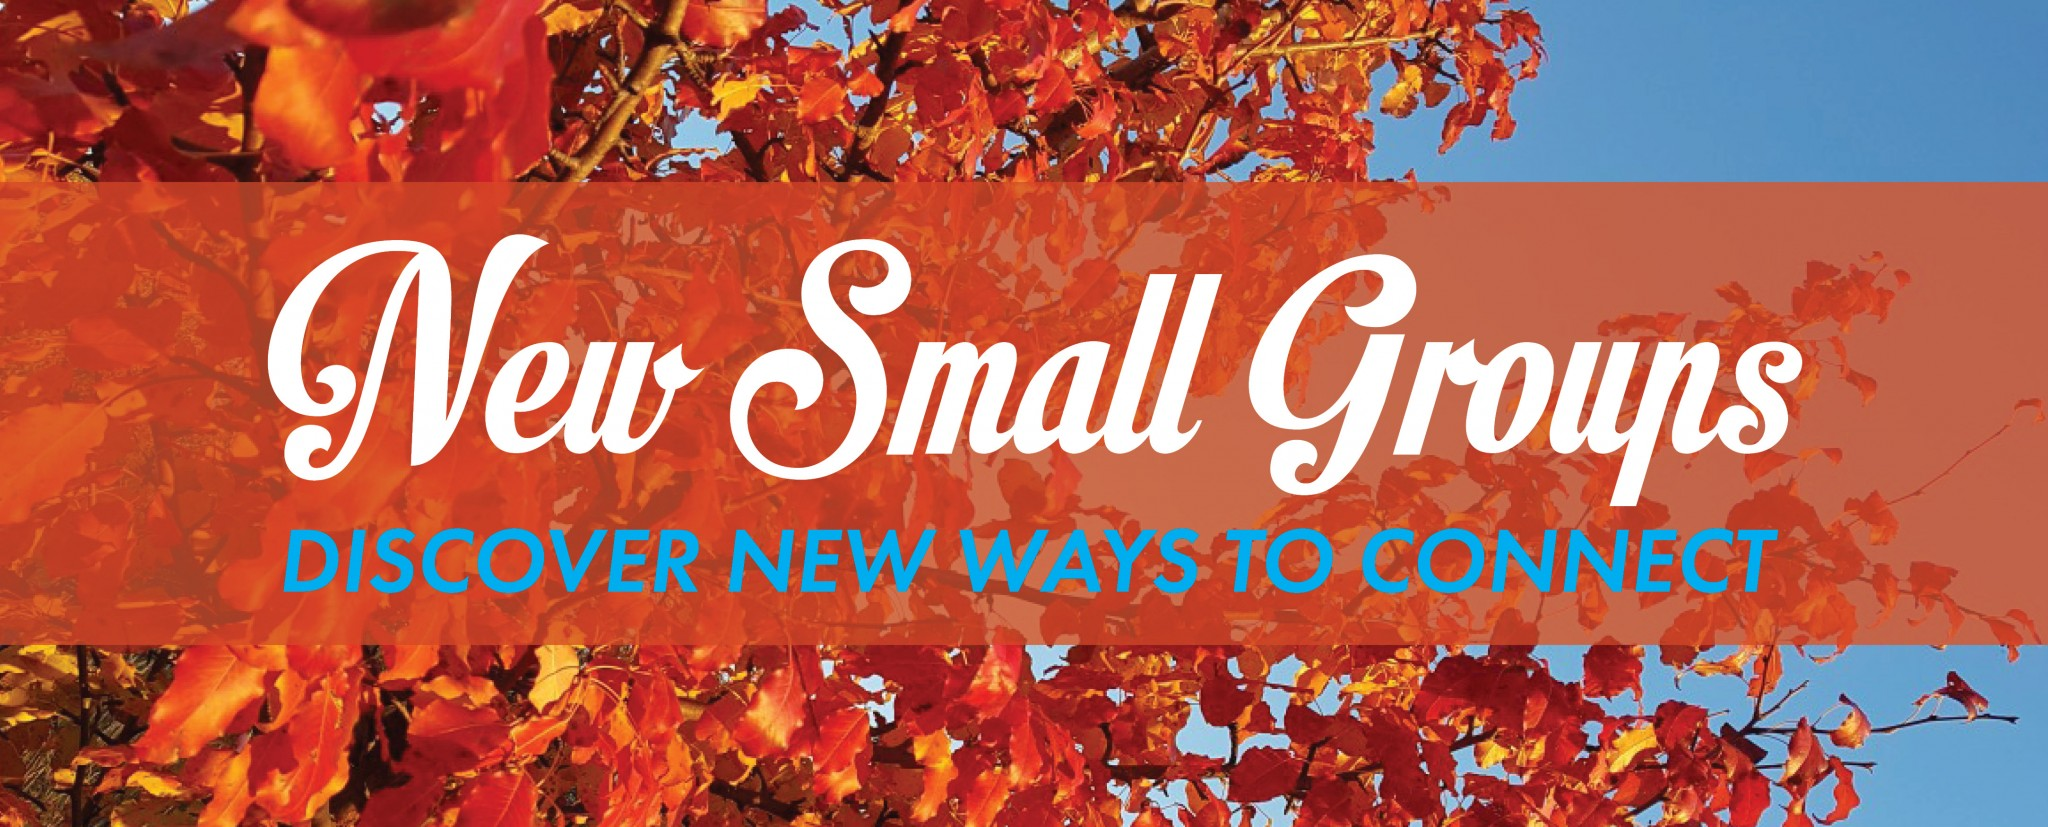 Small Groups fall 2020